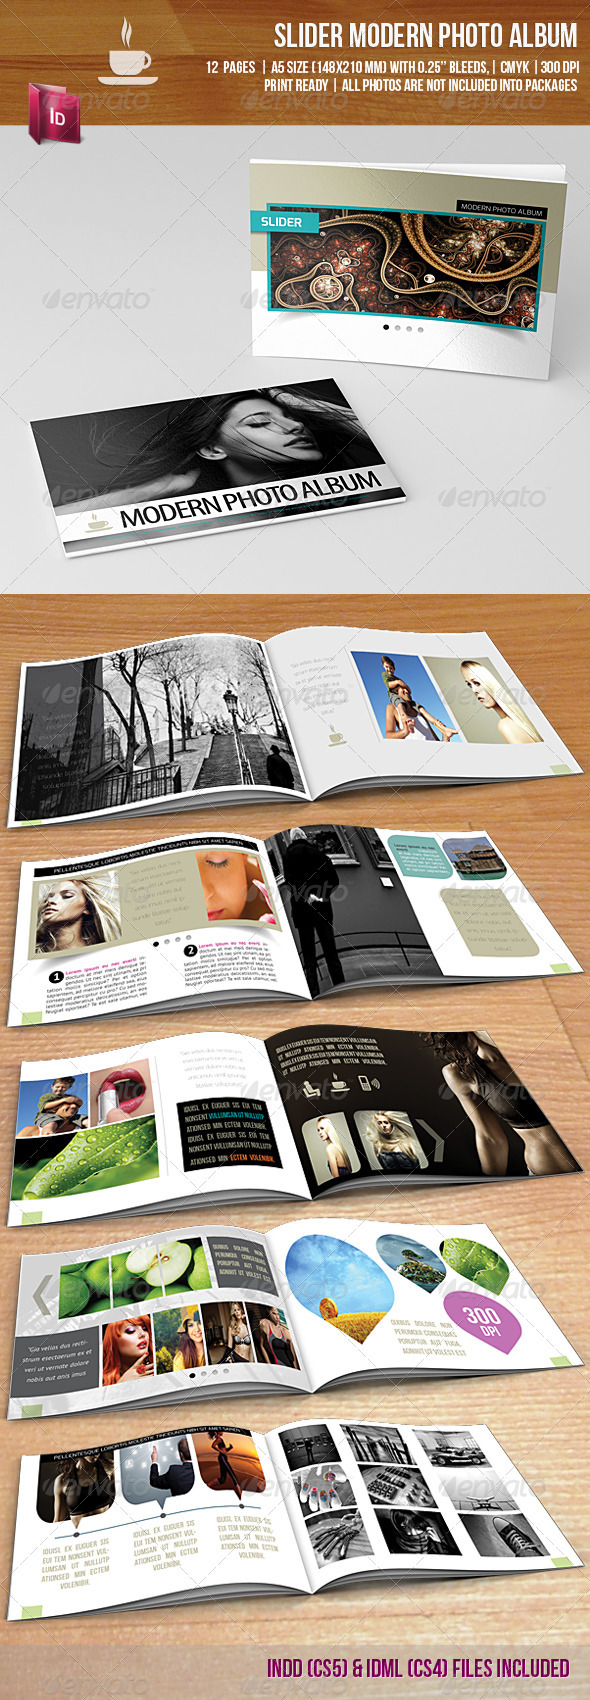 Slider Modern Photo Album - Photo Albums Print Templates